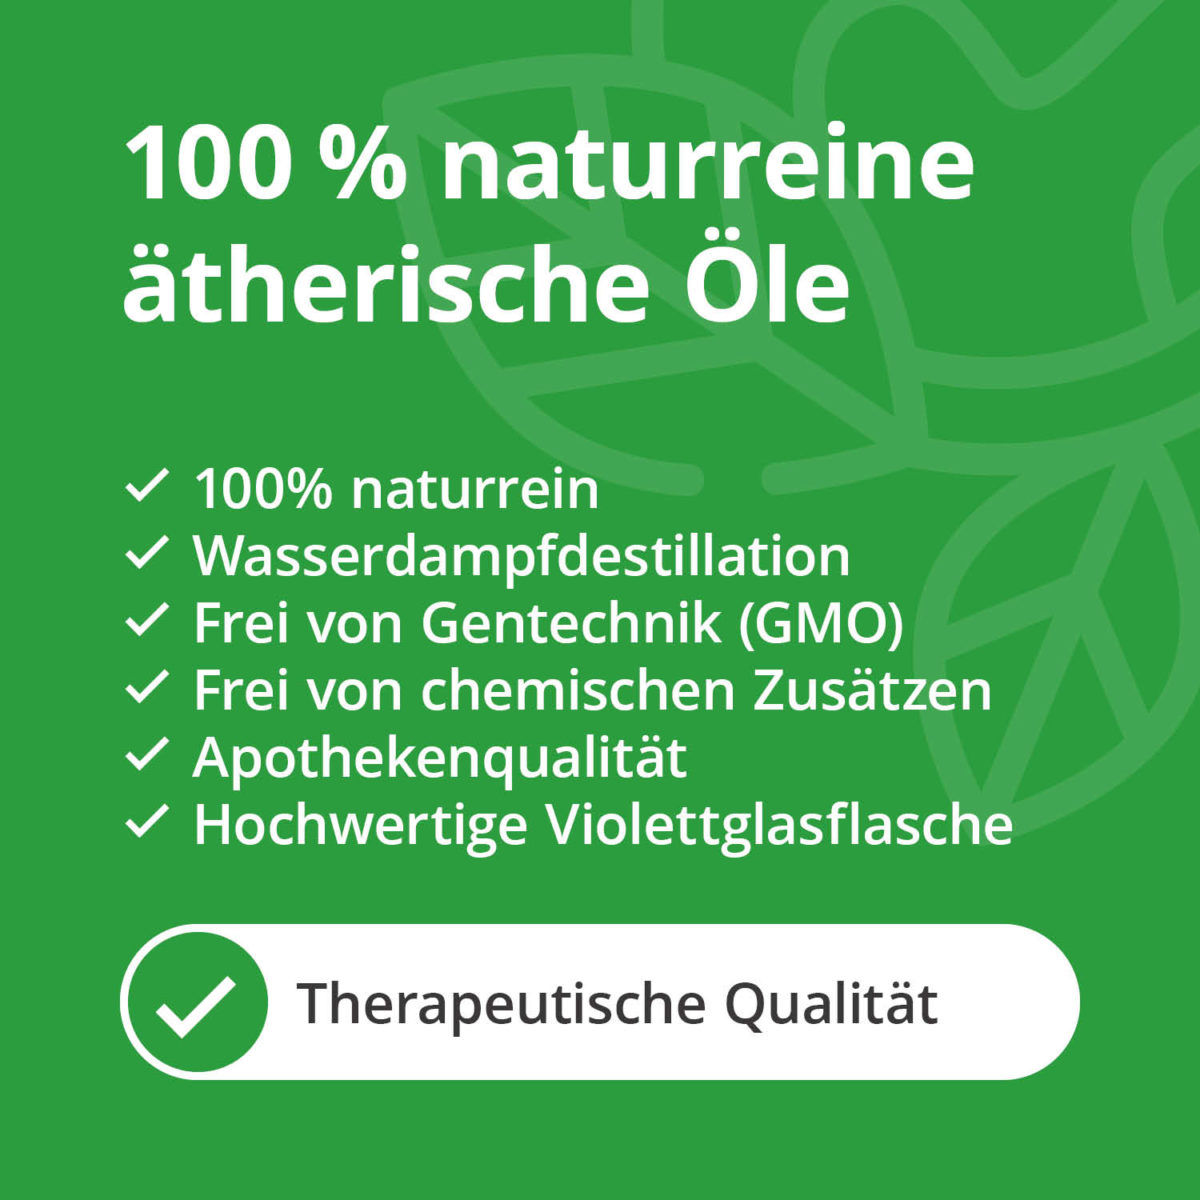 Casida TOP 6 essential oil set (each 10 ml) 16247292 Aromatherapie Aromapflege Lemongras Pfefferminz Lavendel Orange Rosmarin Teebaum5